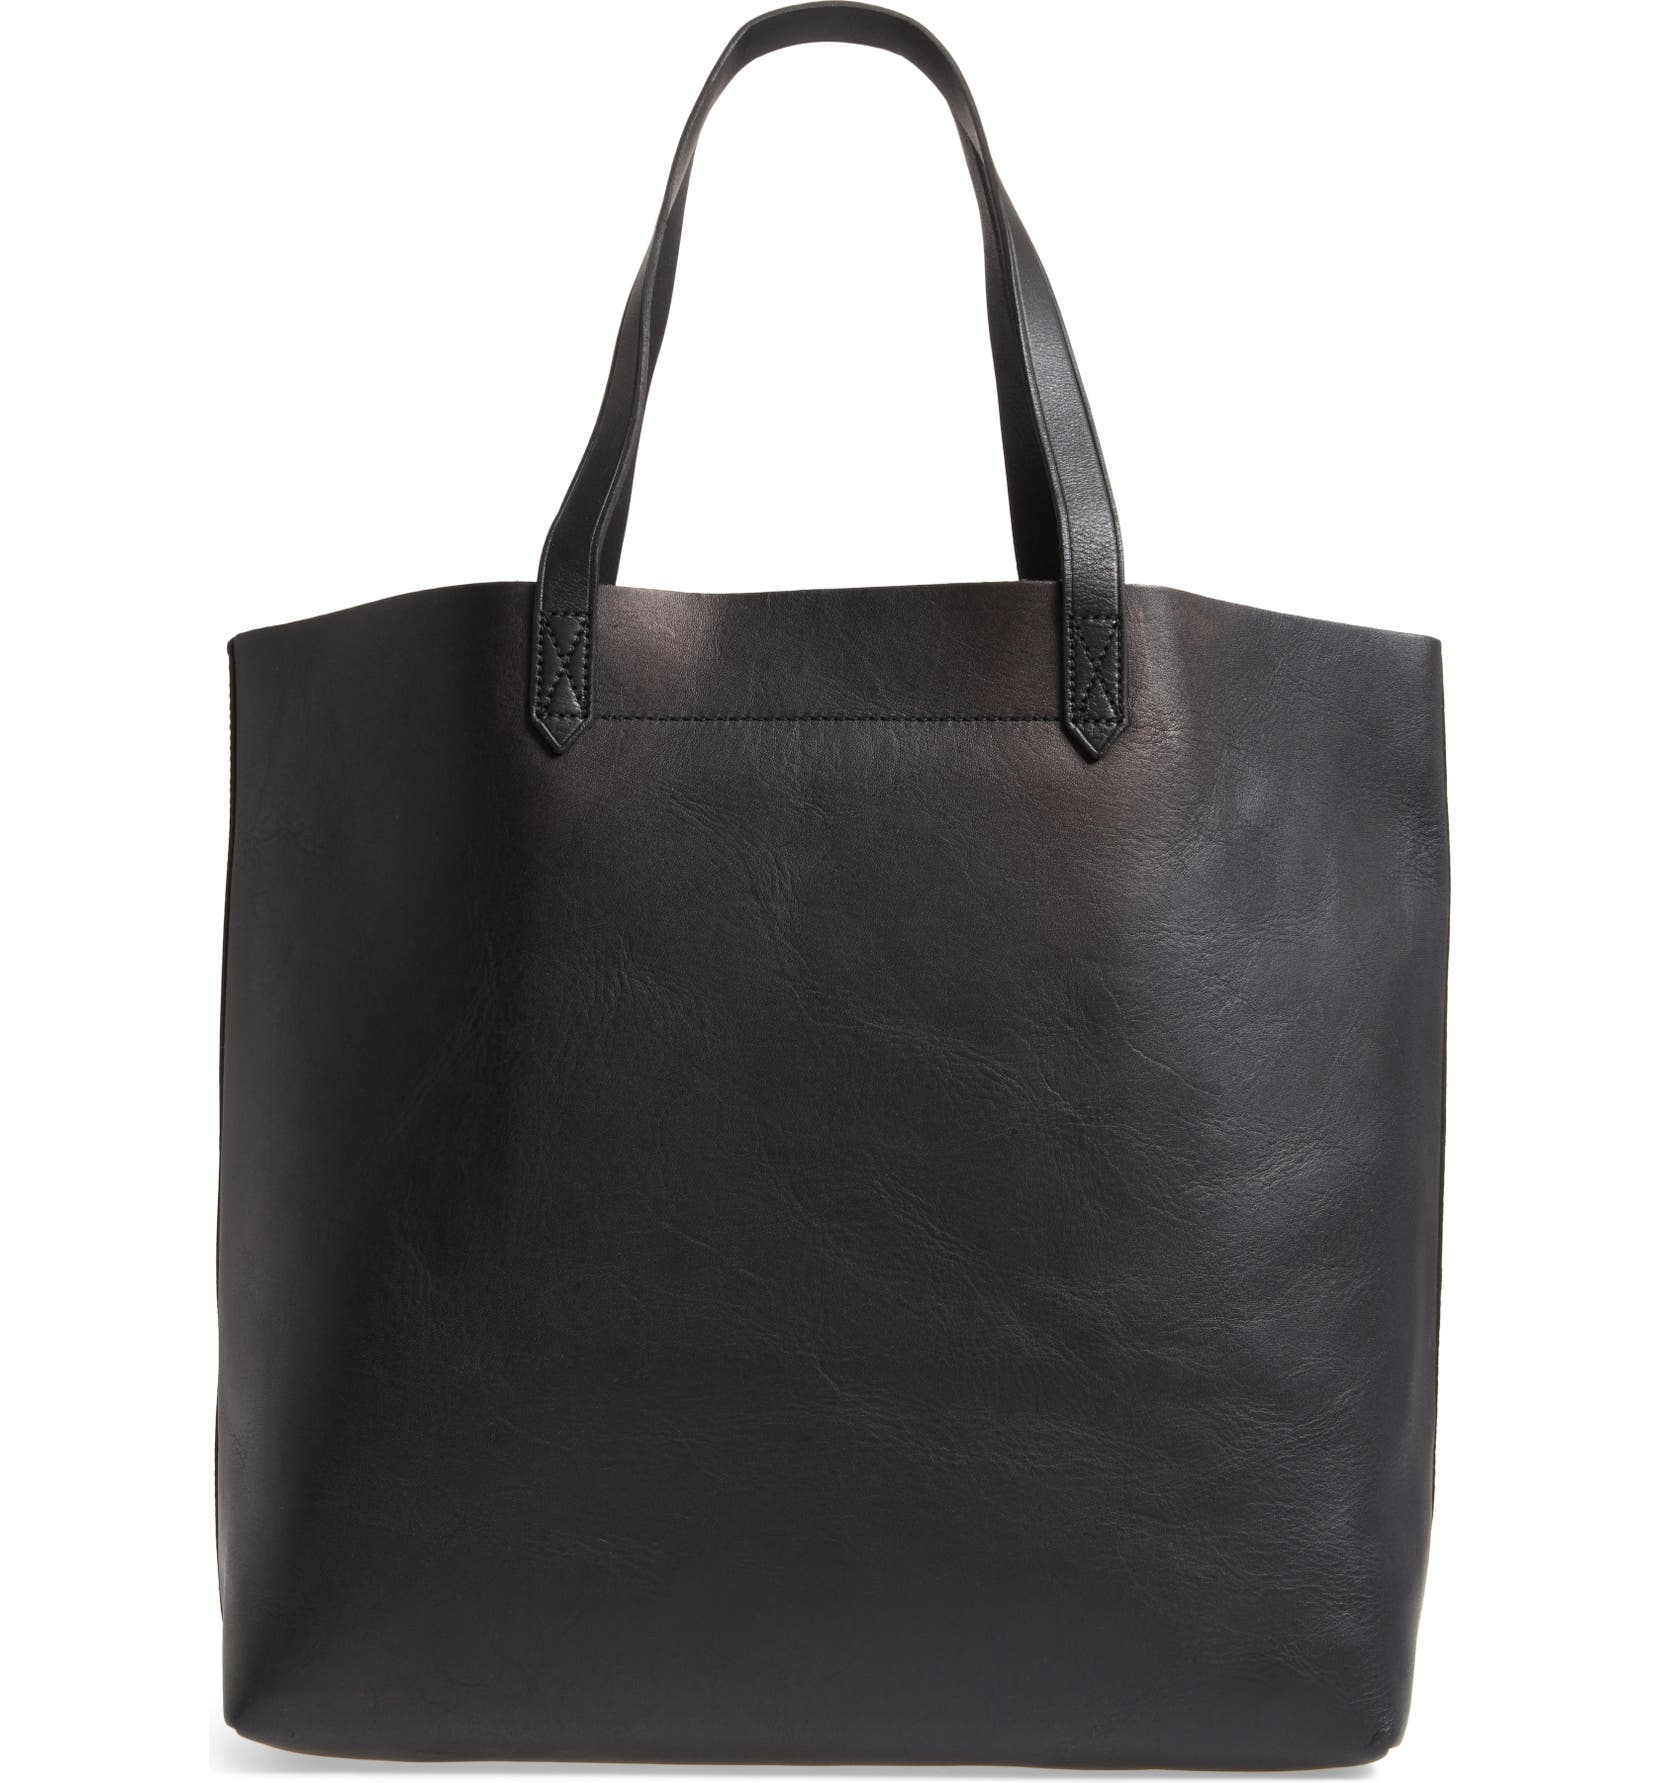 59ce38bb2d Madewell  The Transport  Leather Tote